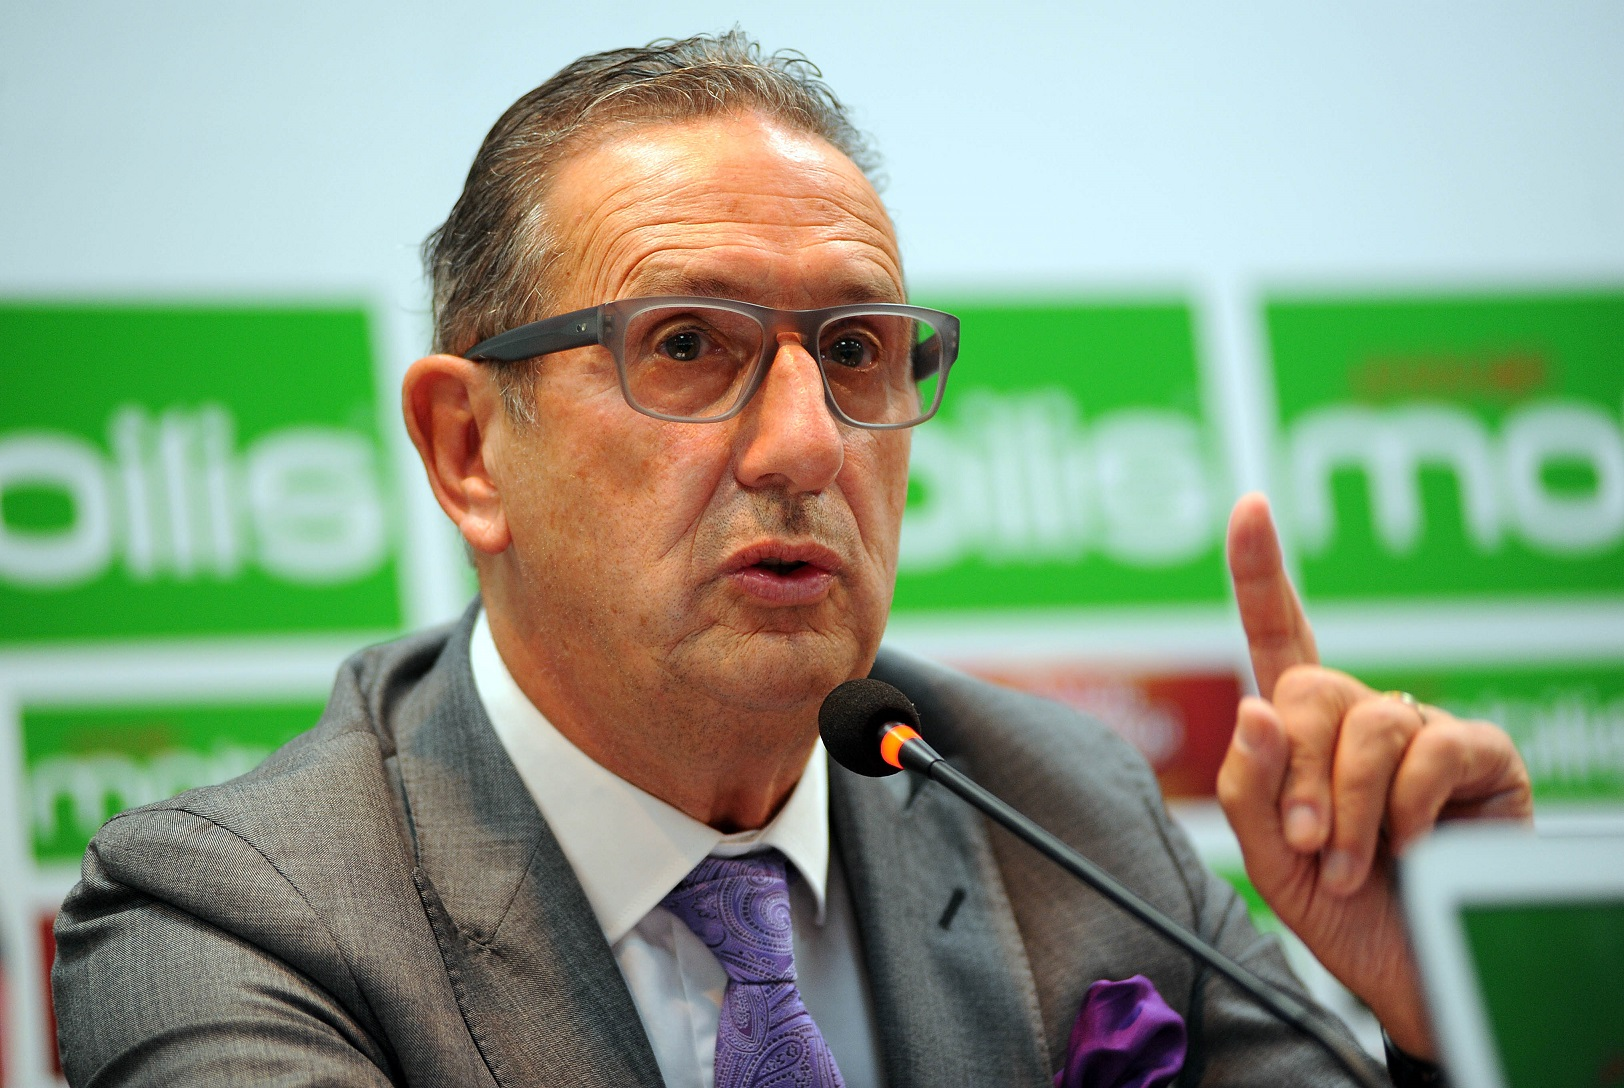 Georges Leekens lors de la conférence de presse. New Press